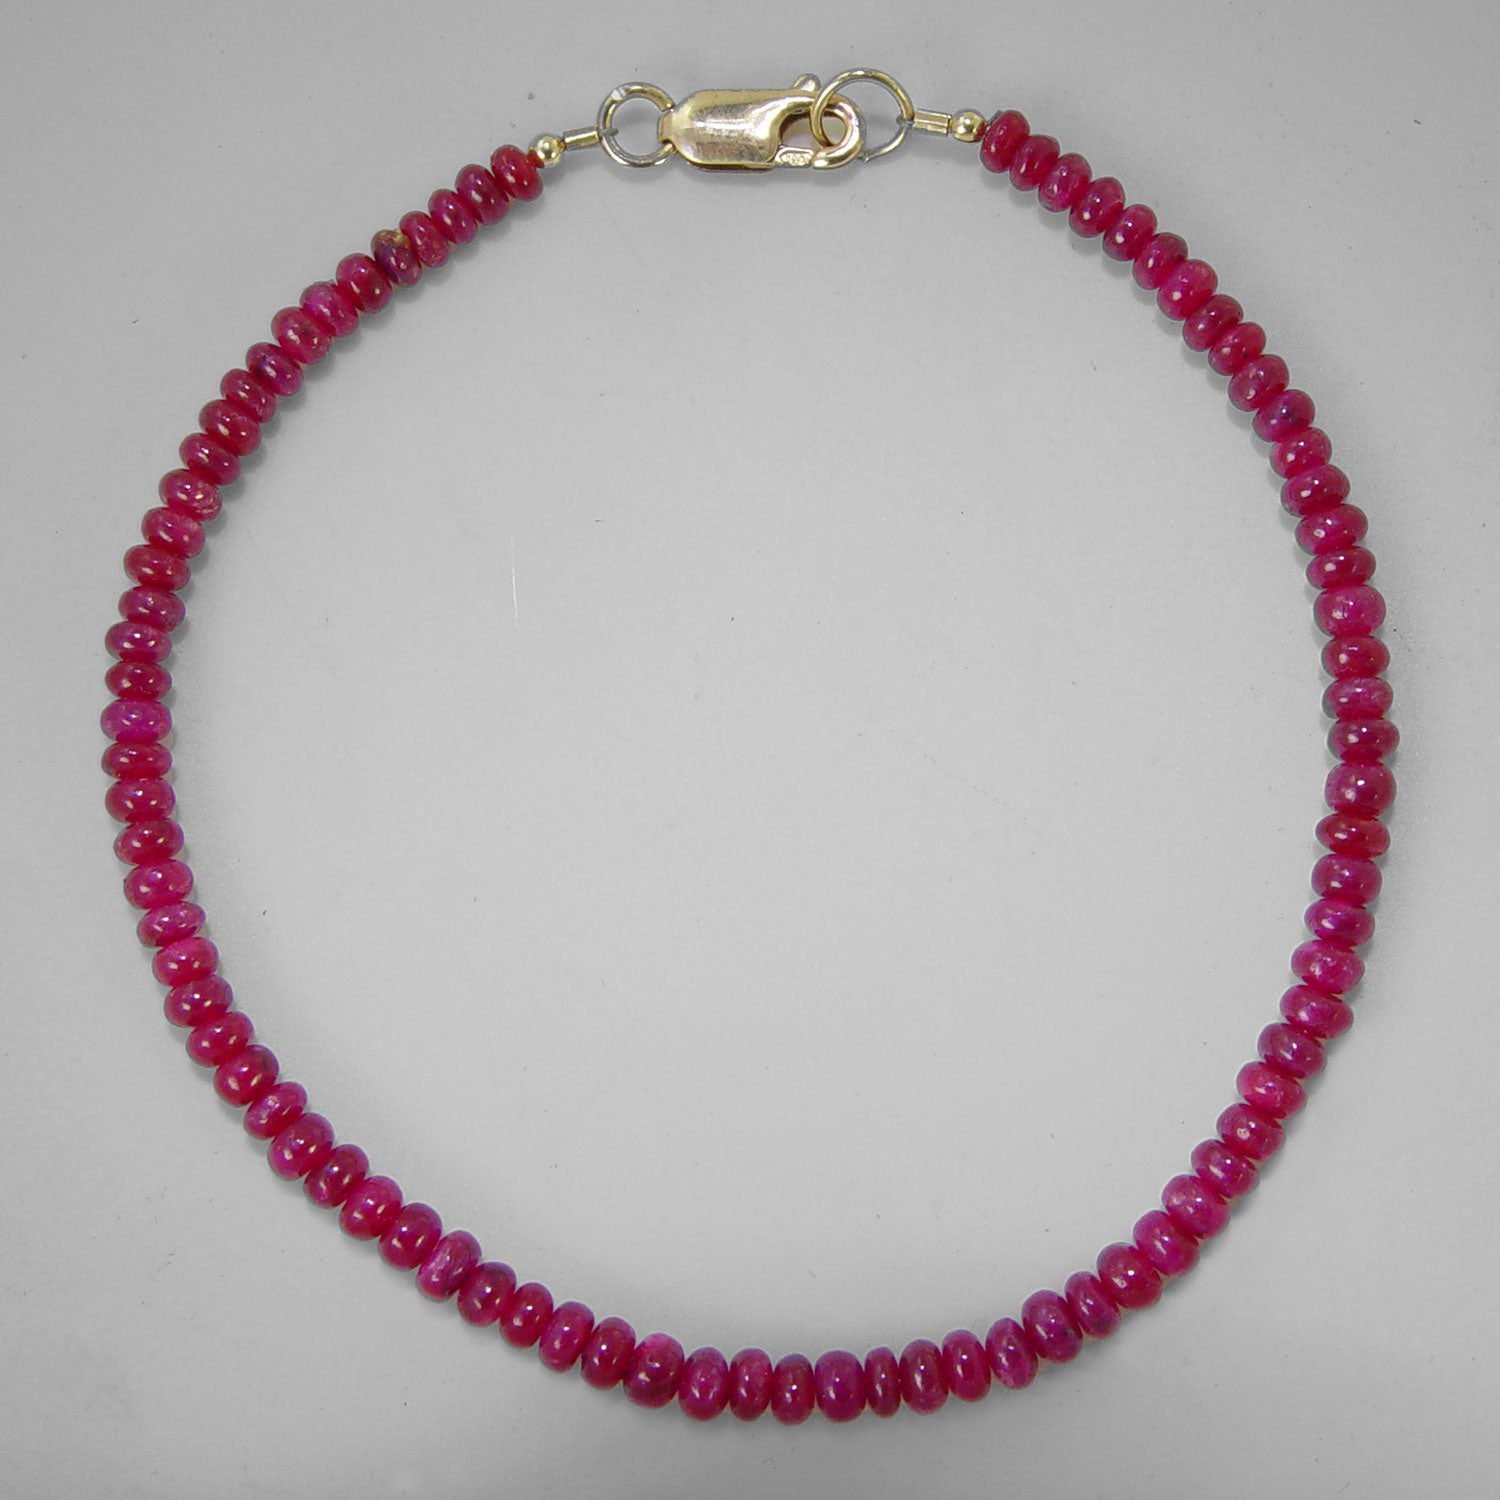 "Ruby Small Rondelle 8"" Bracelet, 25 ct"